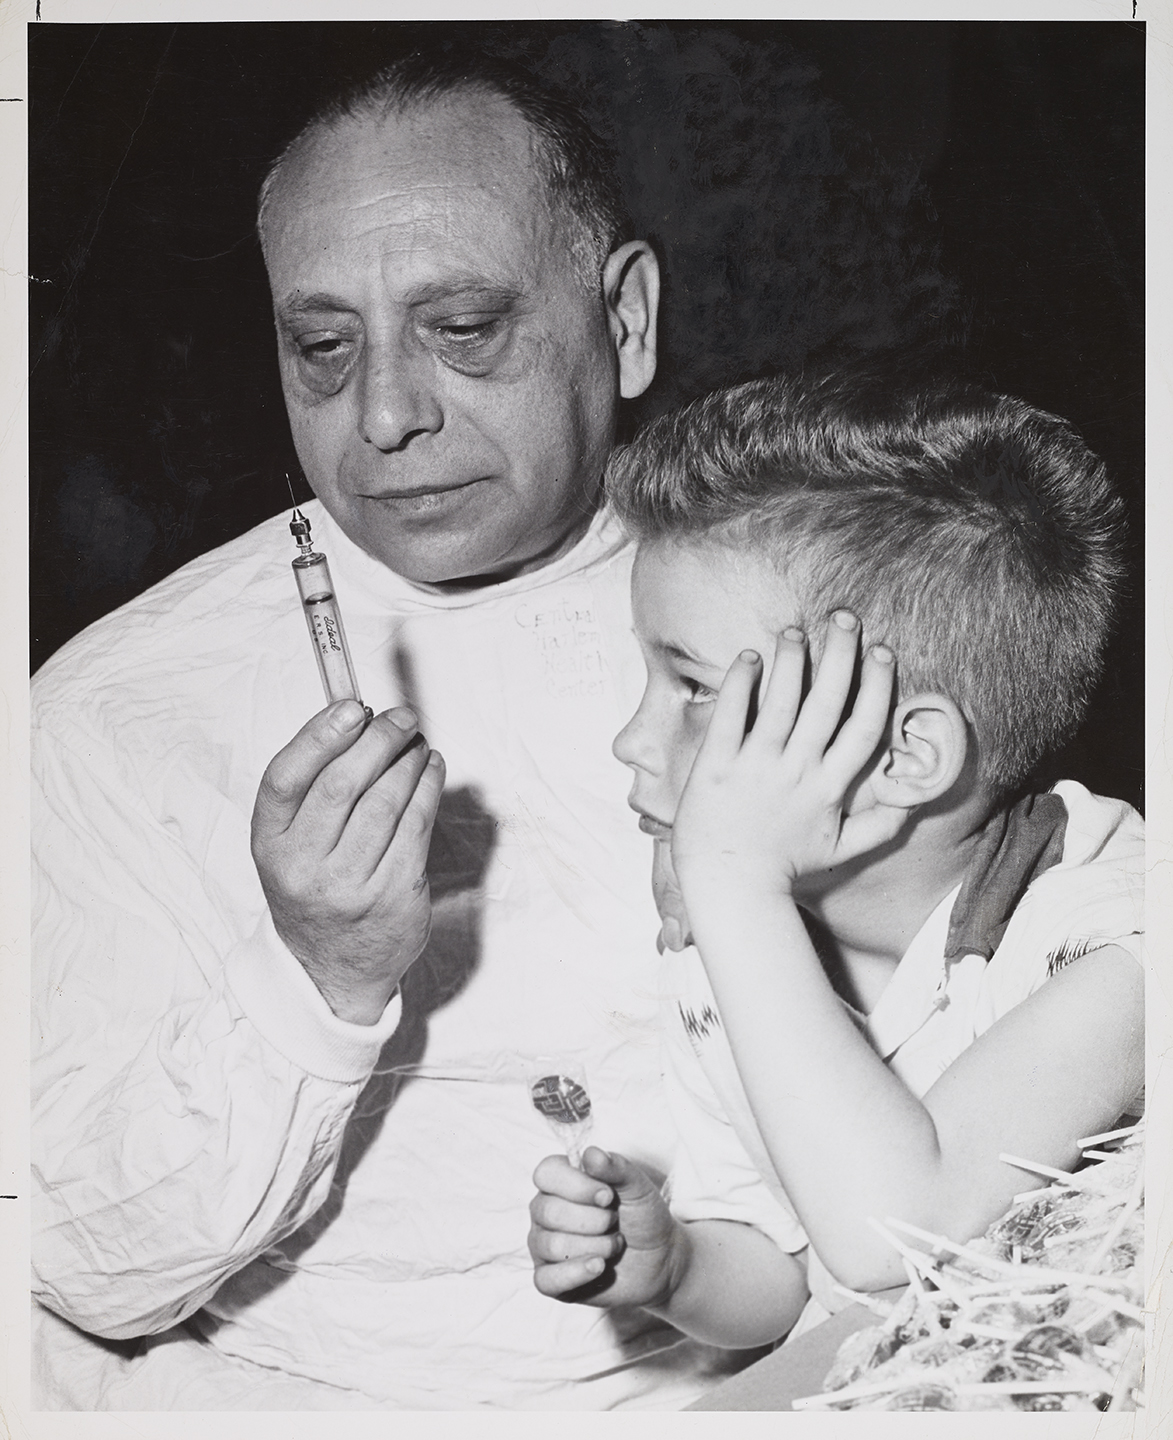 Boy with post-vaccine lollipop reward poses with doctor, 1955. Department of Health Collection, NYC Municipal Archives.